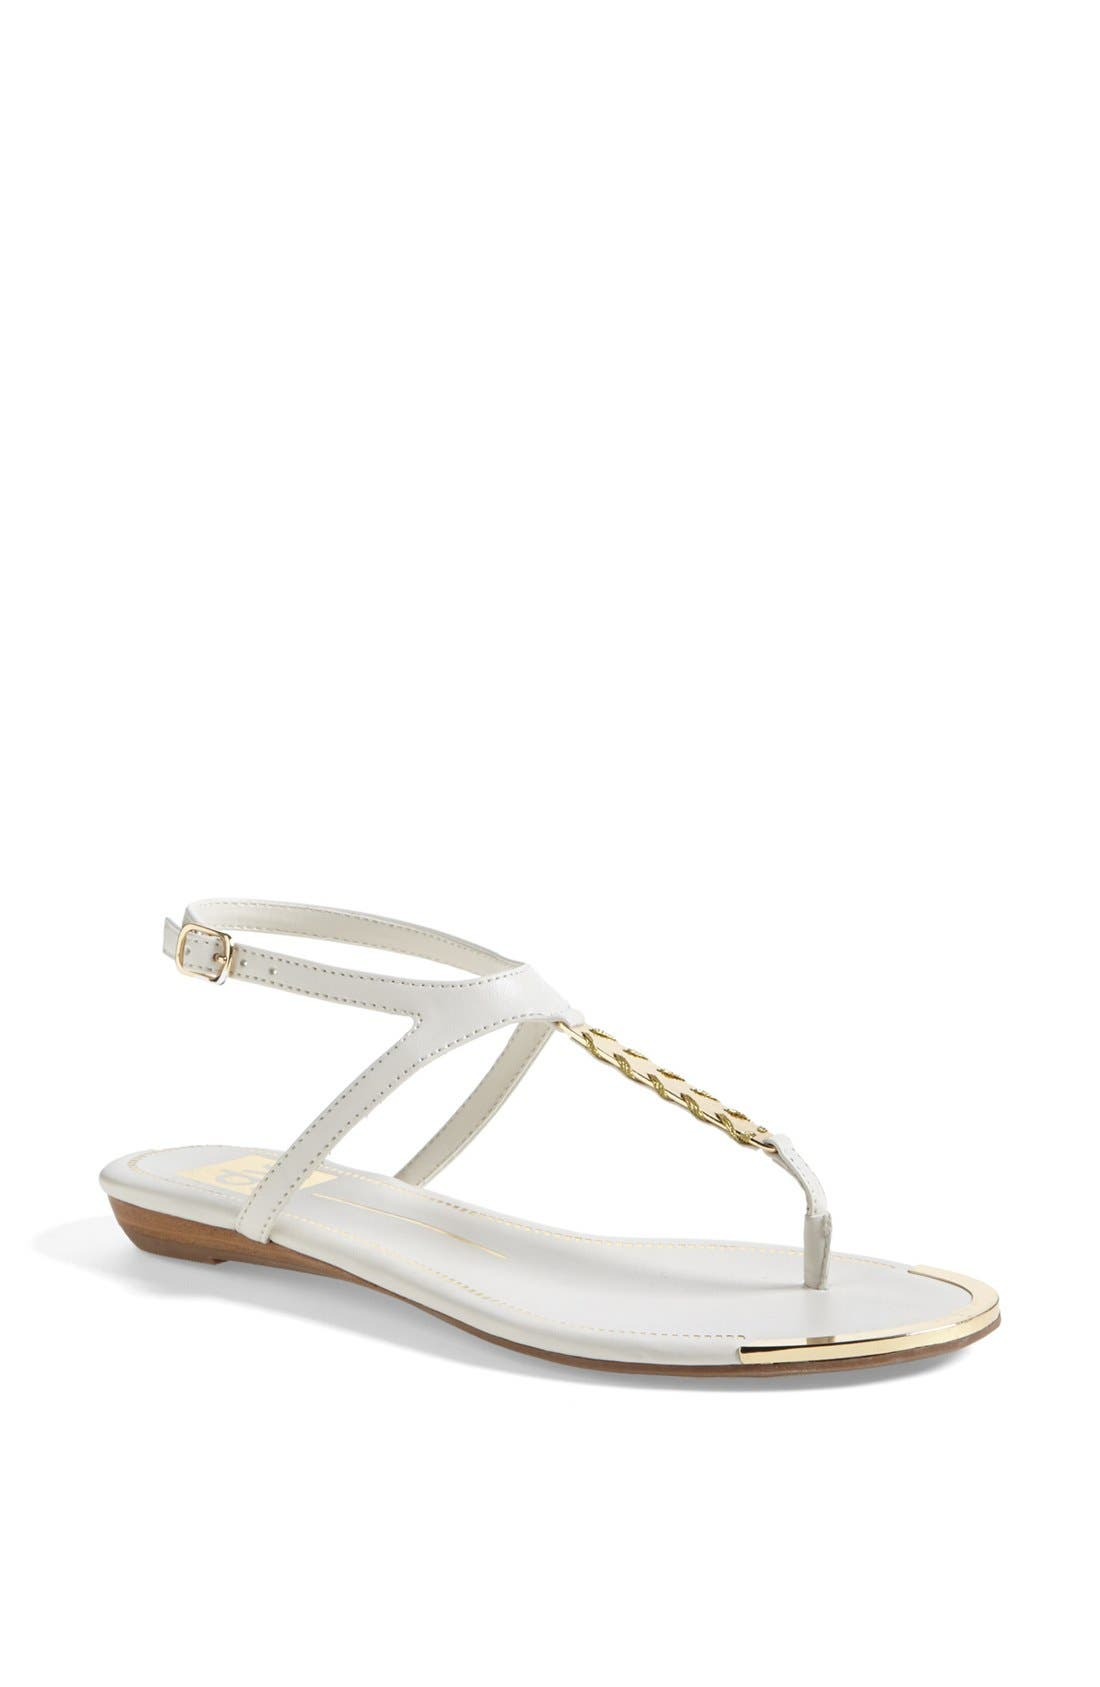 Alternate Image 1 Selected - DV by Dolce Vita 'Alvyn' Sandal (Nordstrom Exclusive)